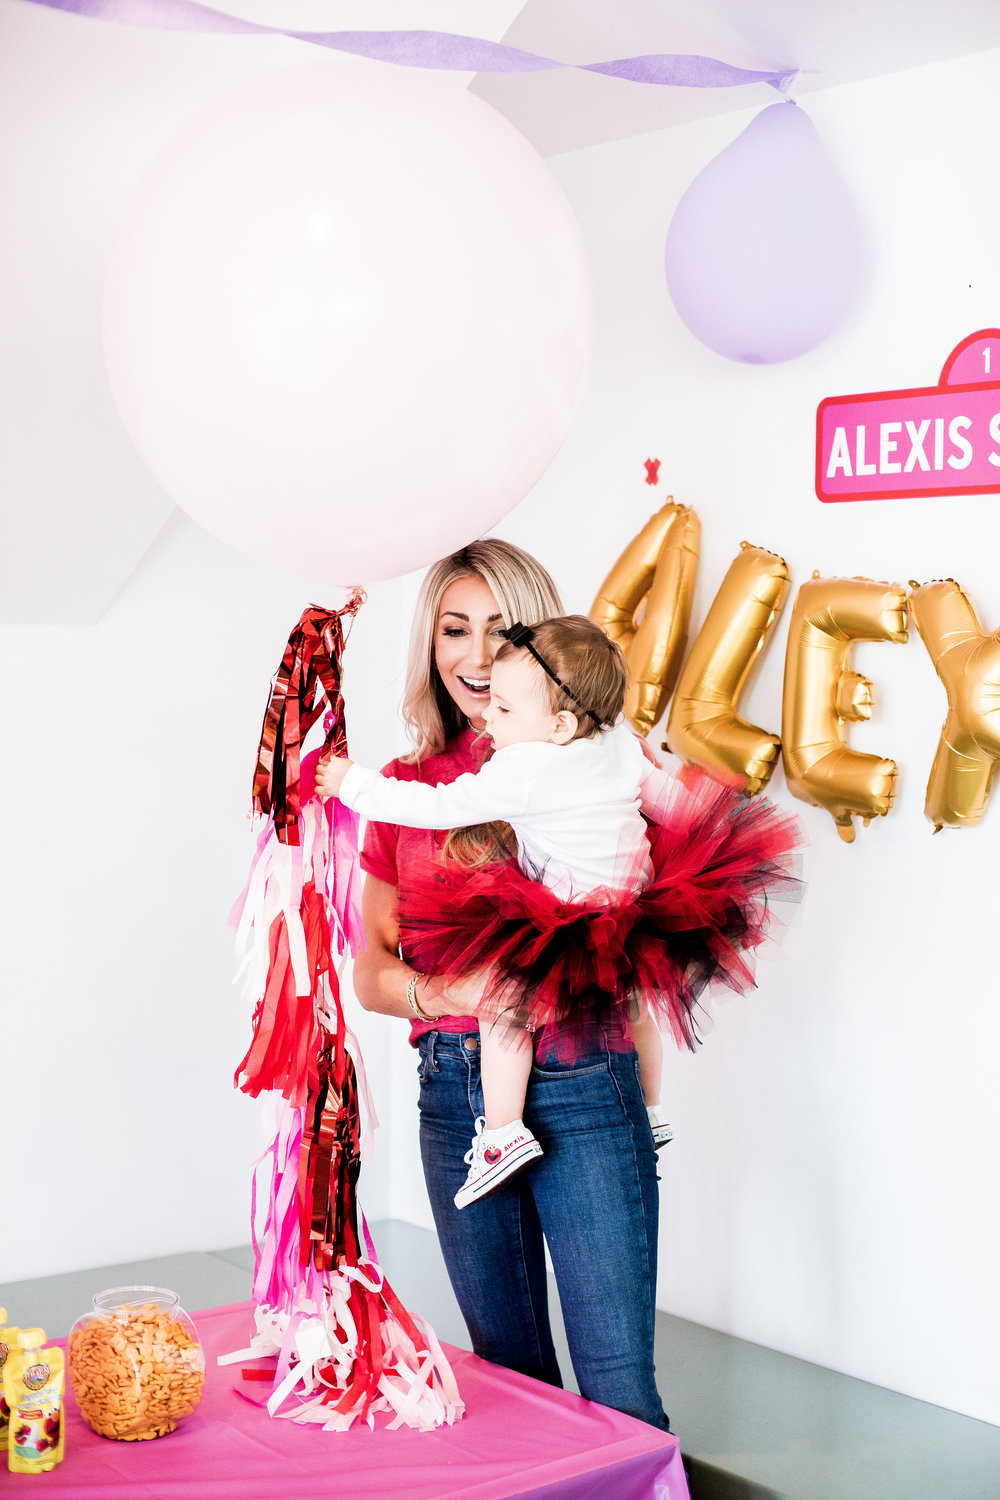 Alexis'_1st_Birthday_04.07.18_-54.jpg